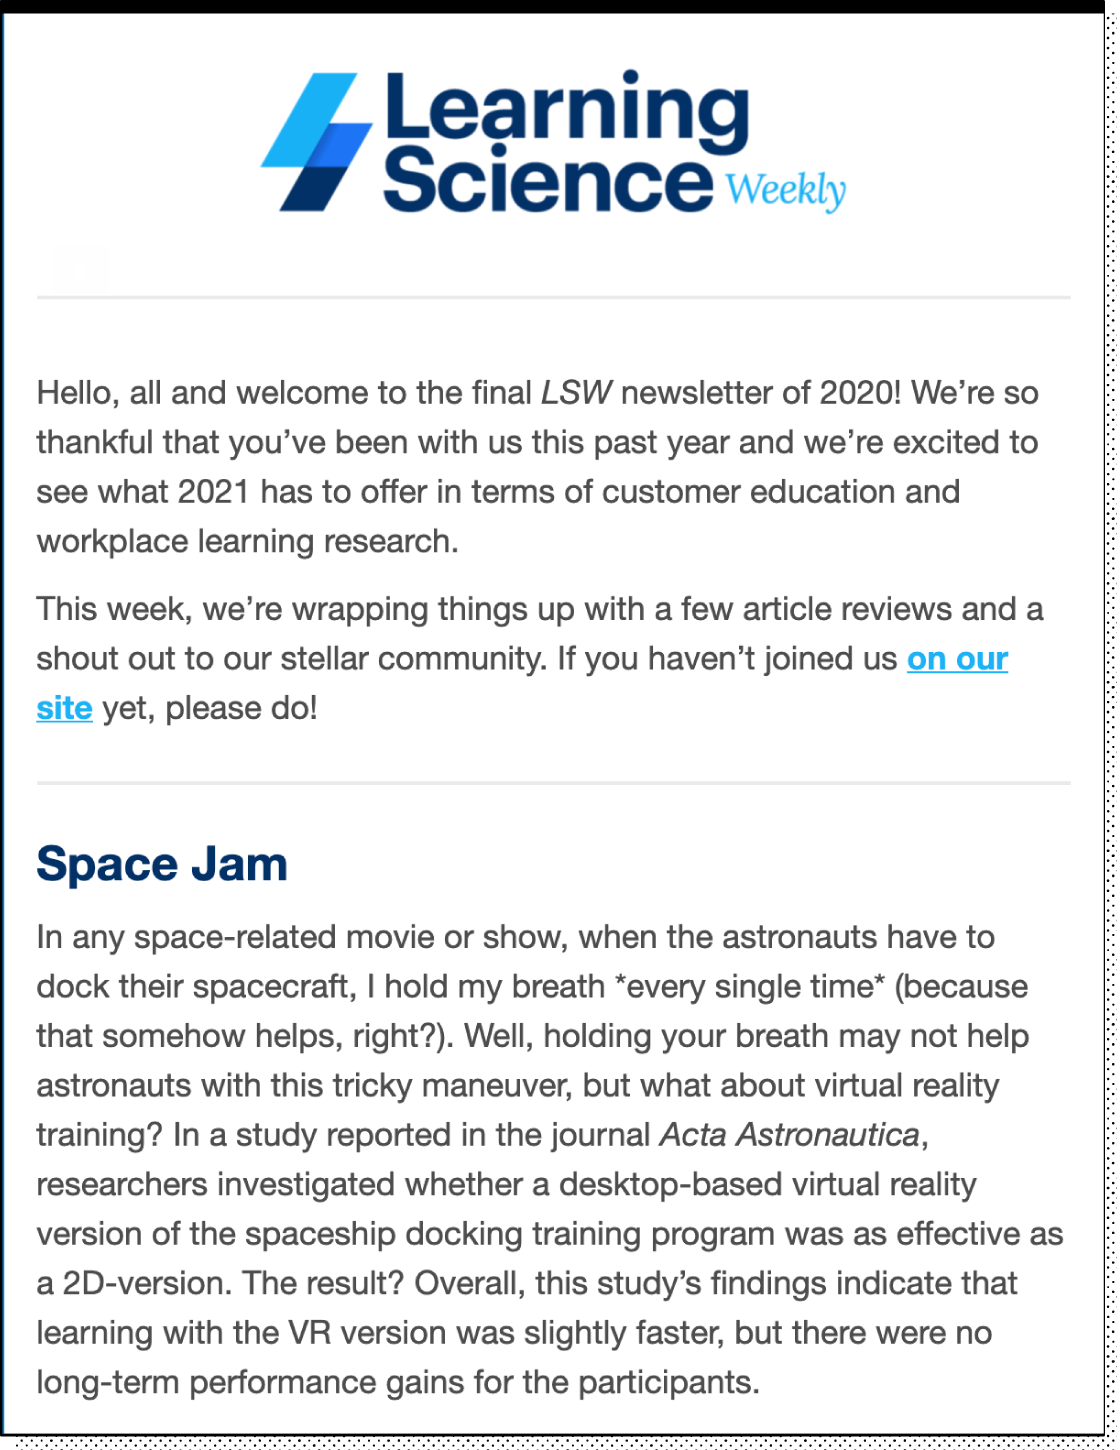 Learning Science Weekly email newsletter example